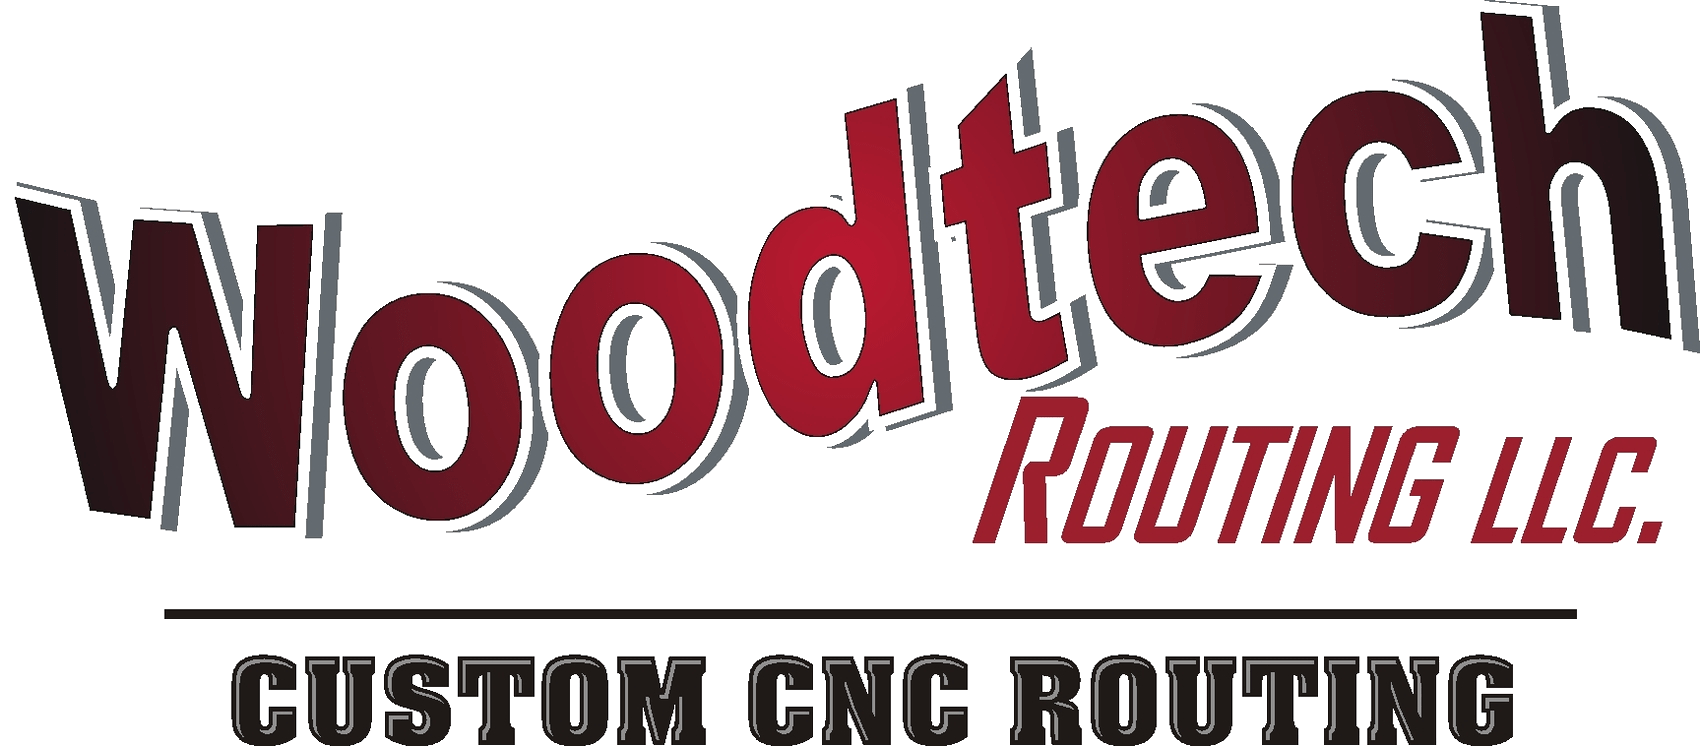 Woodtech Routing LLC